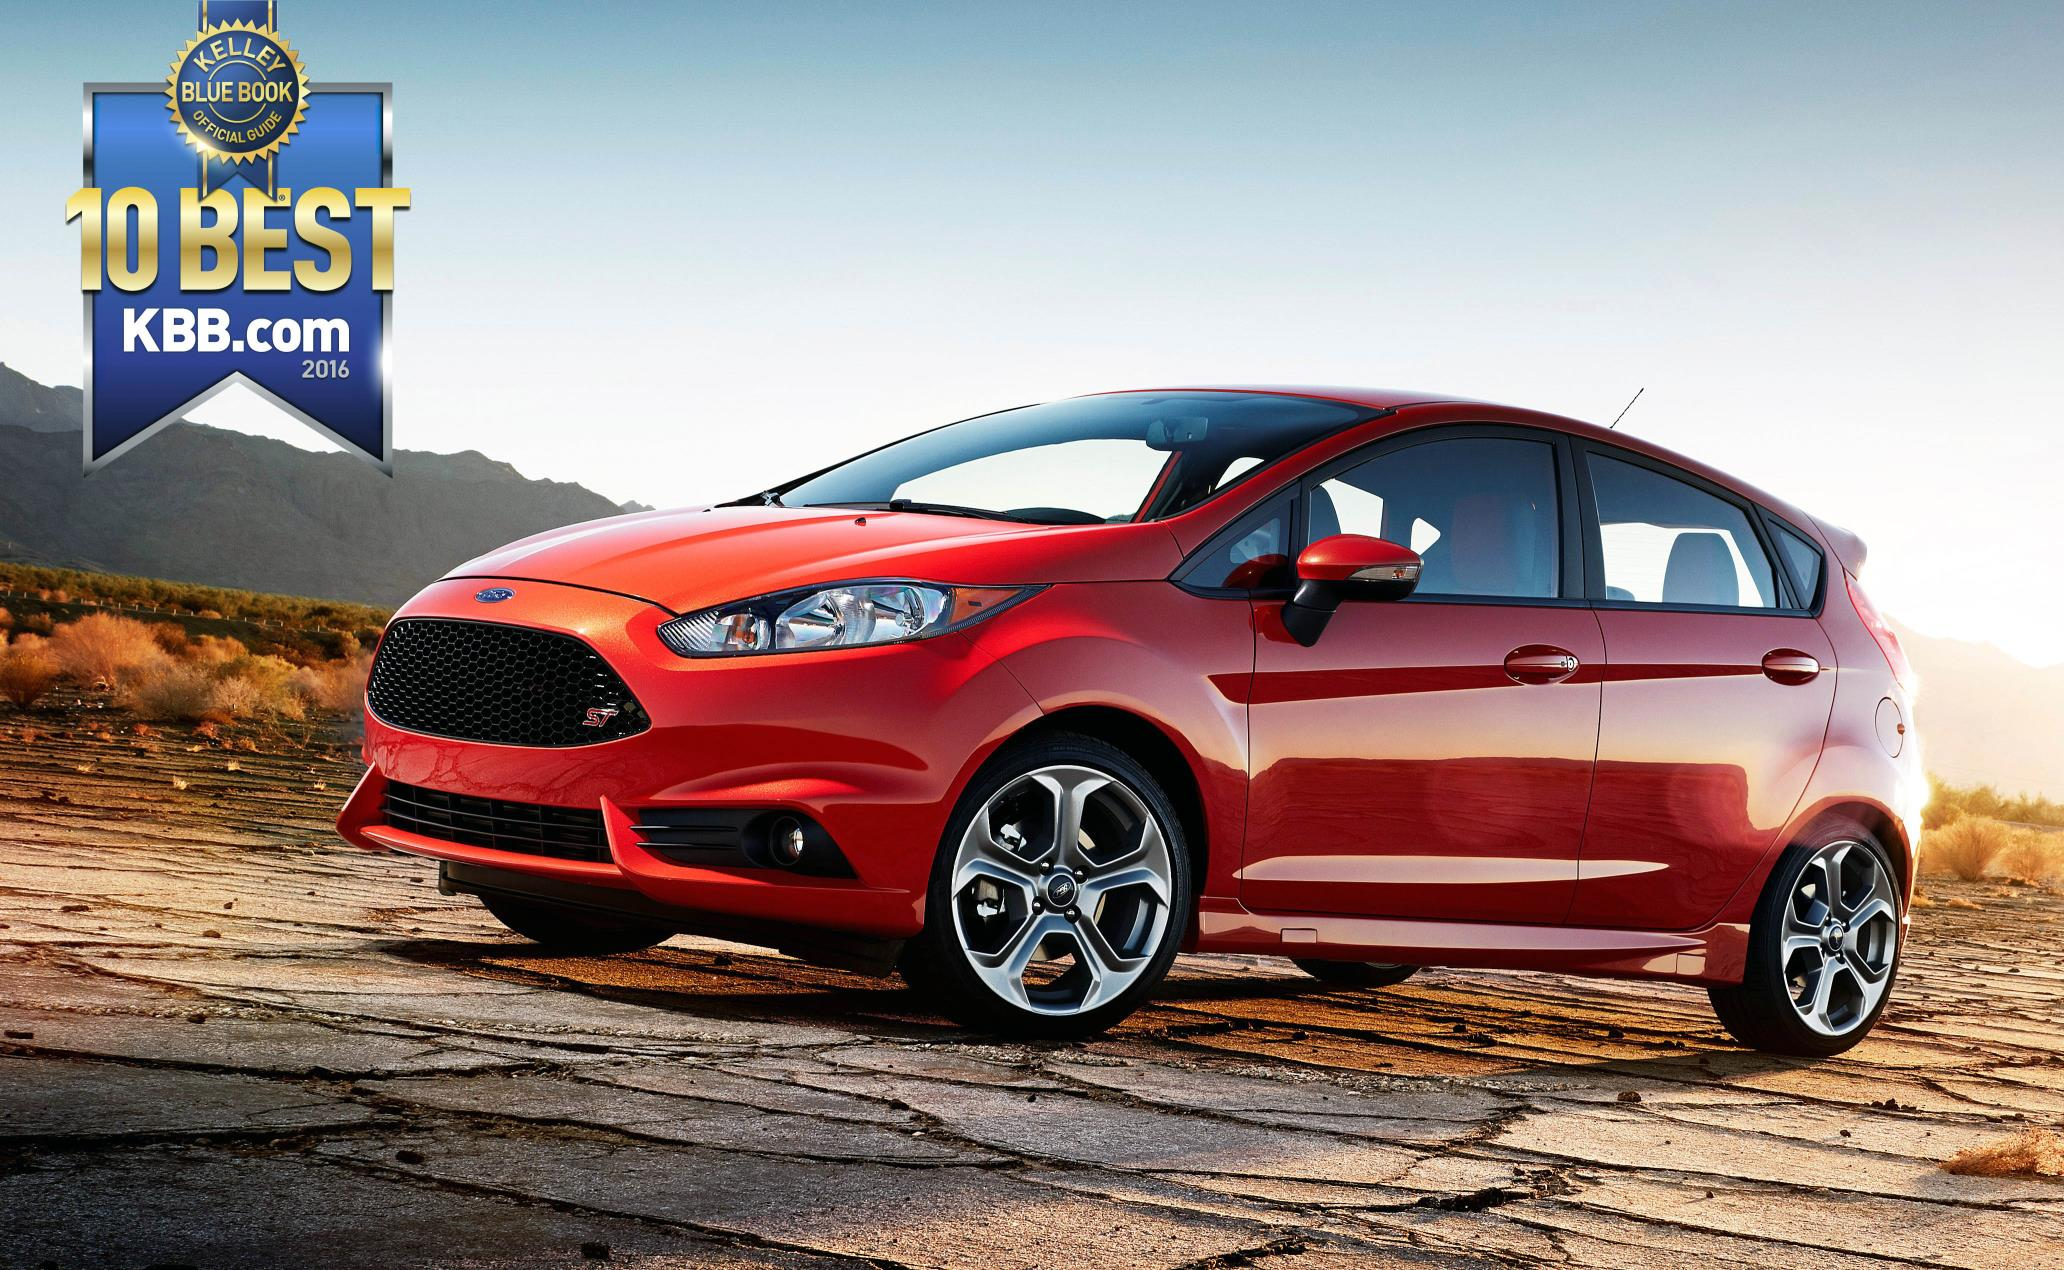 Kisselback Ford Cool Factor KBB Names Ford Fiesta One Of Top - Ford cool cars